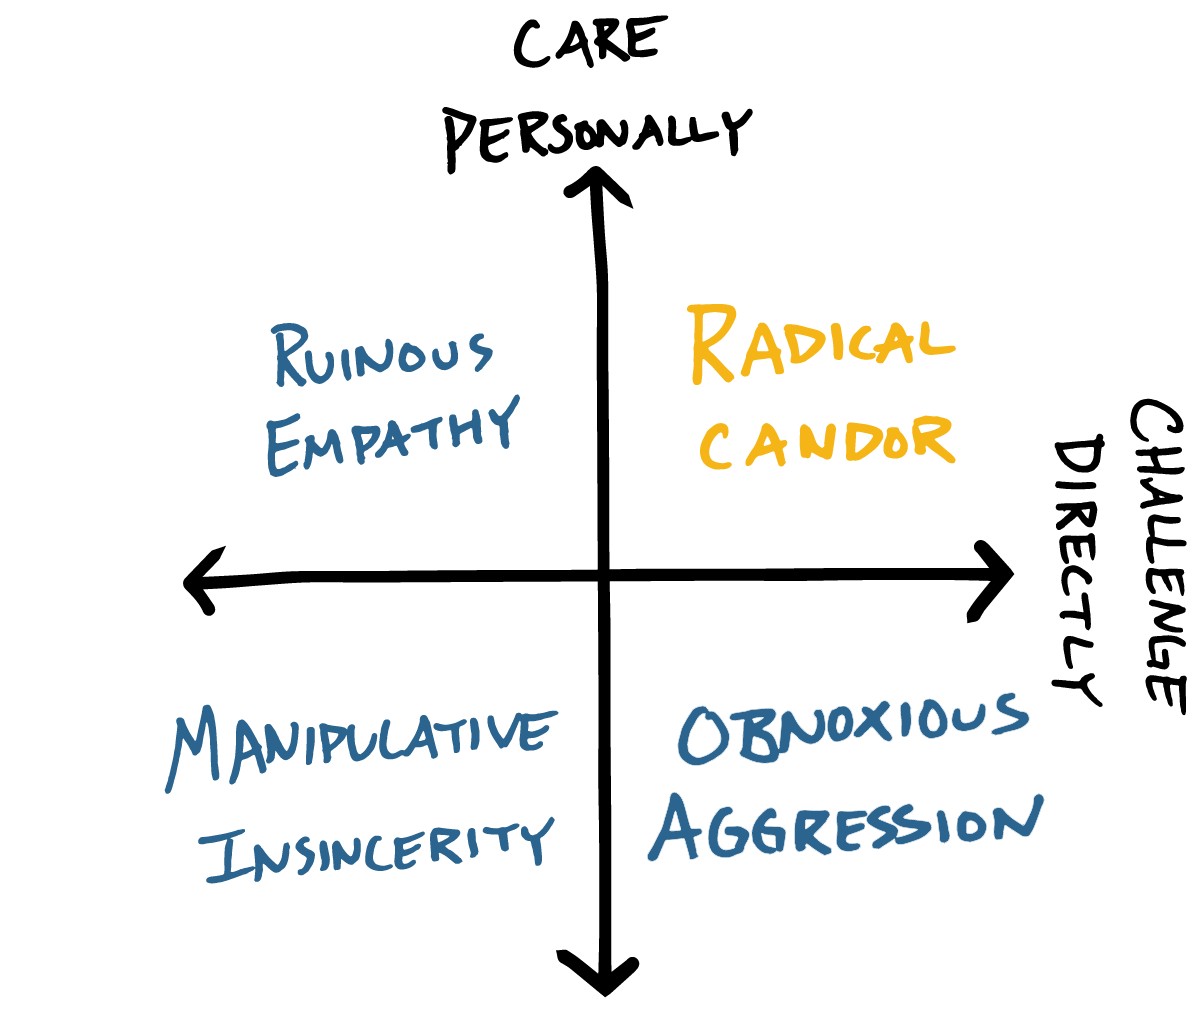 The Radical Candor framework has two axes: Challenge Directly and Care Personally.